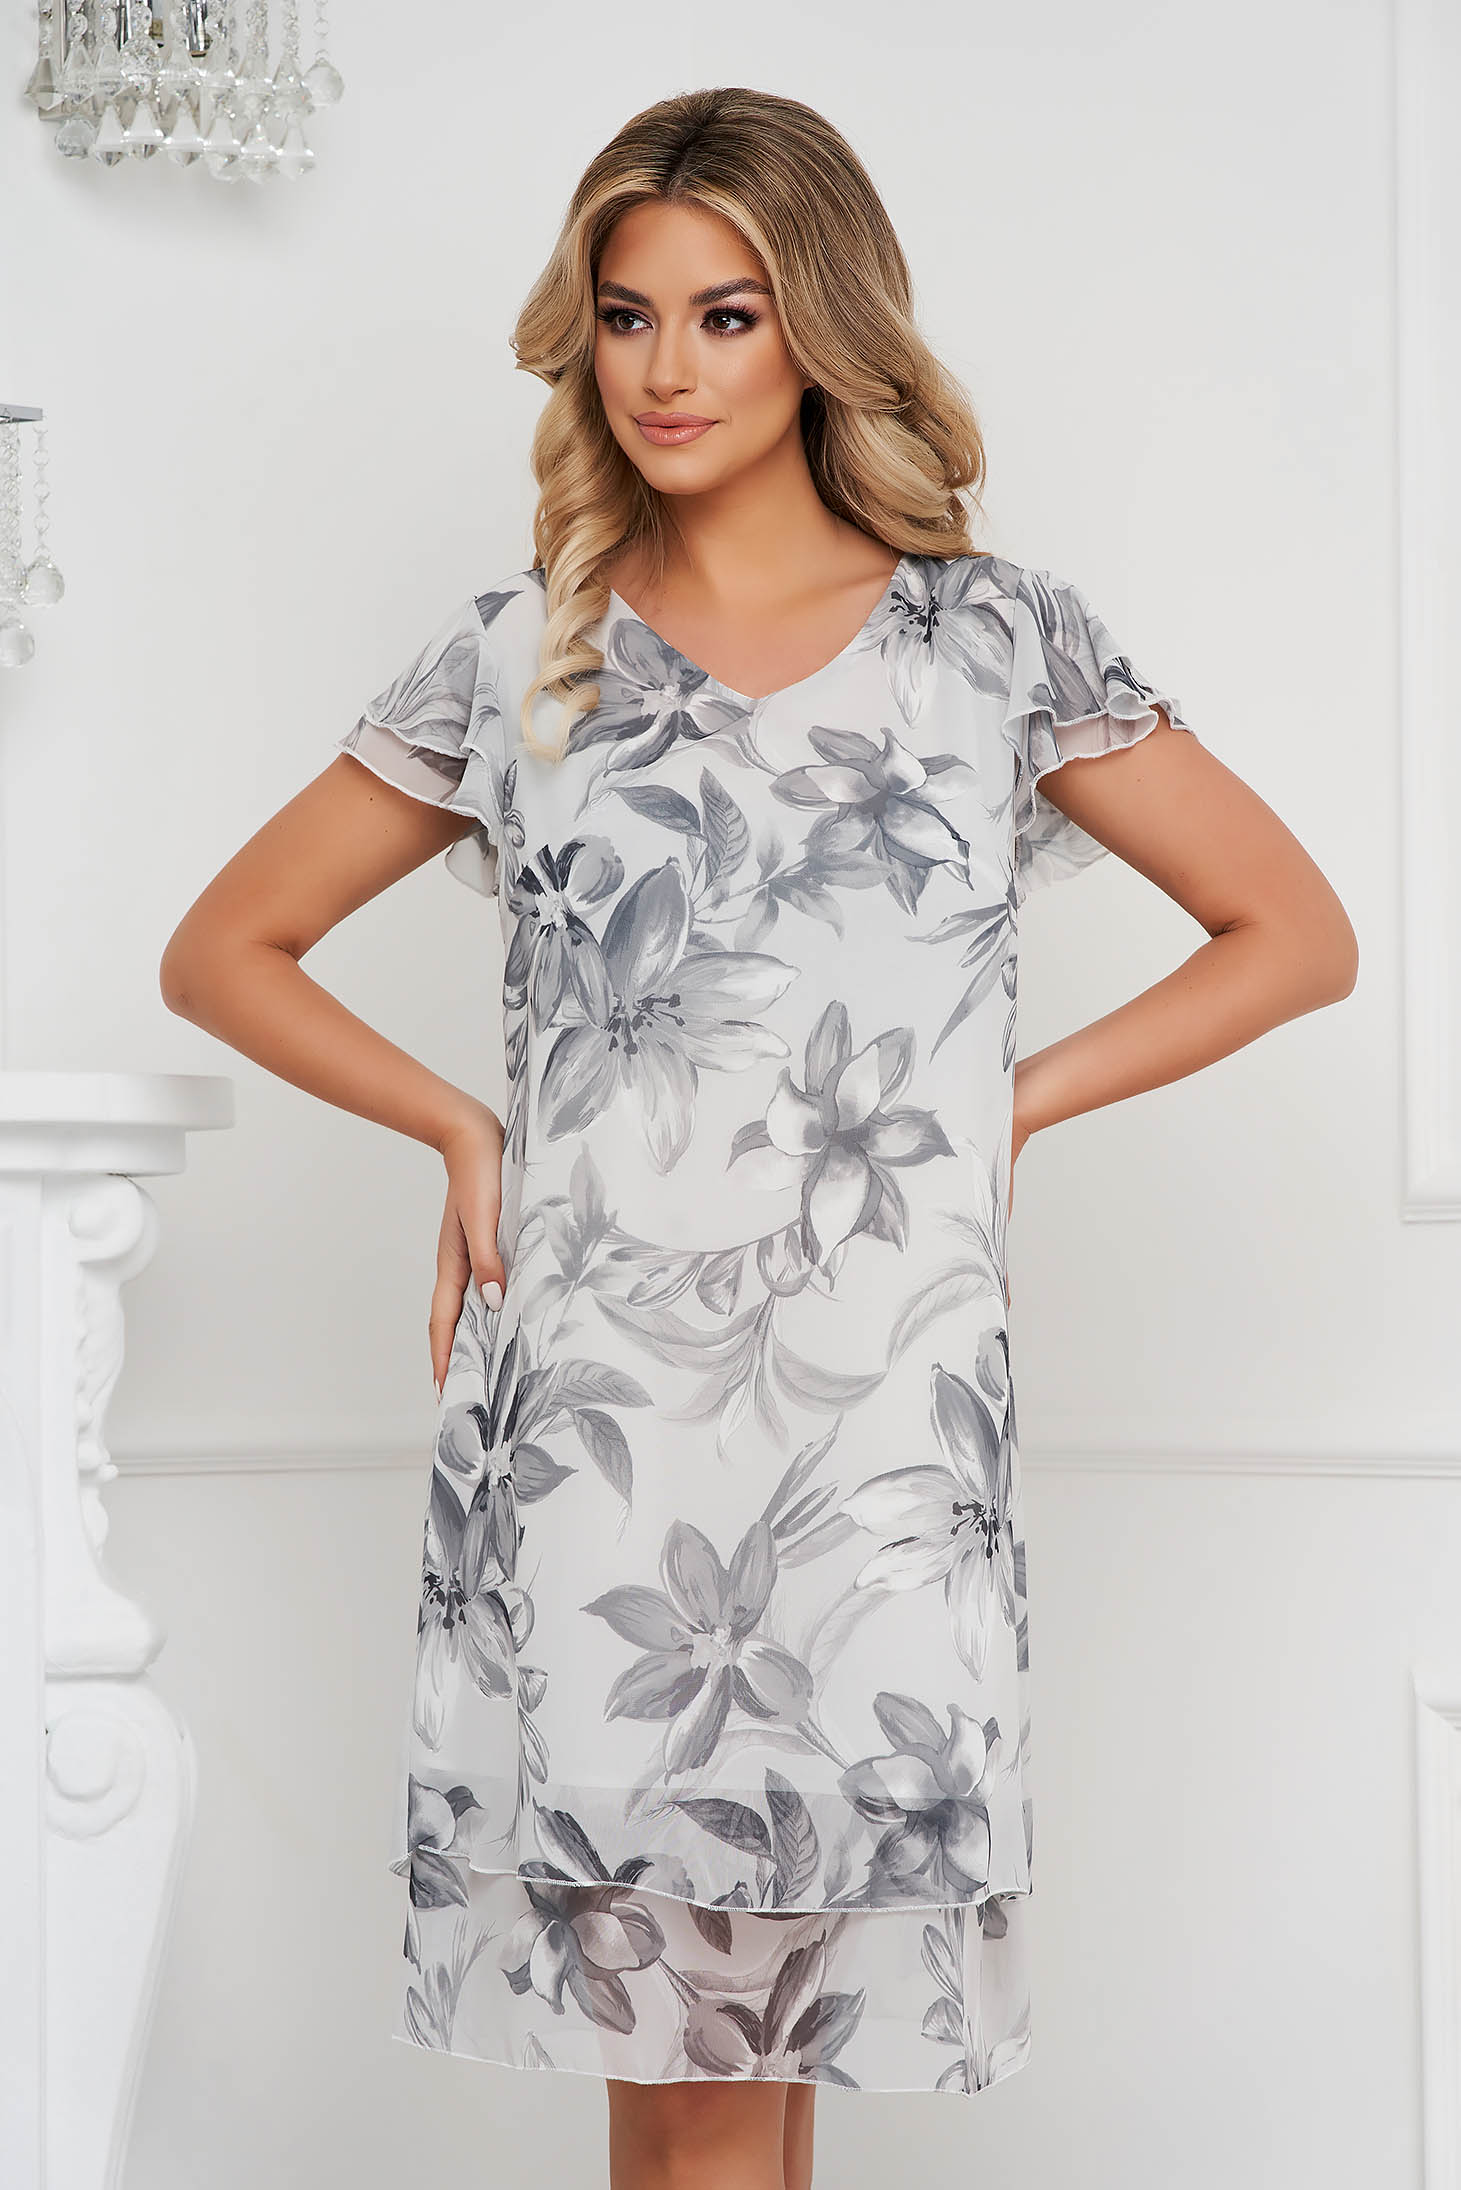 Grey dress elegant from veil fabric a-line with ruffle details